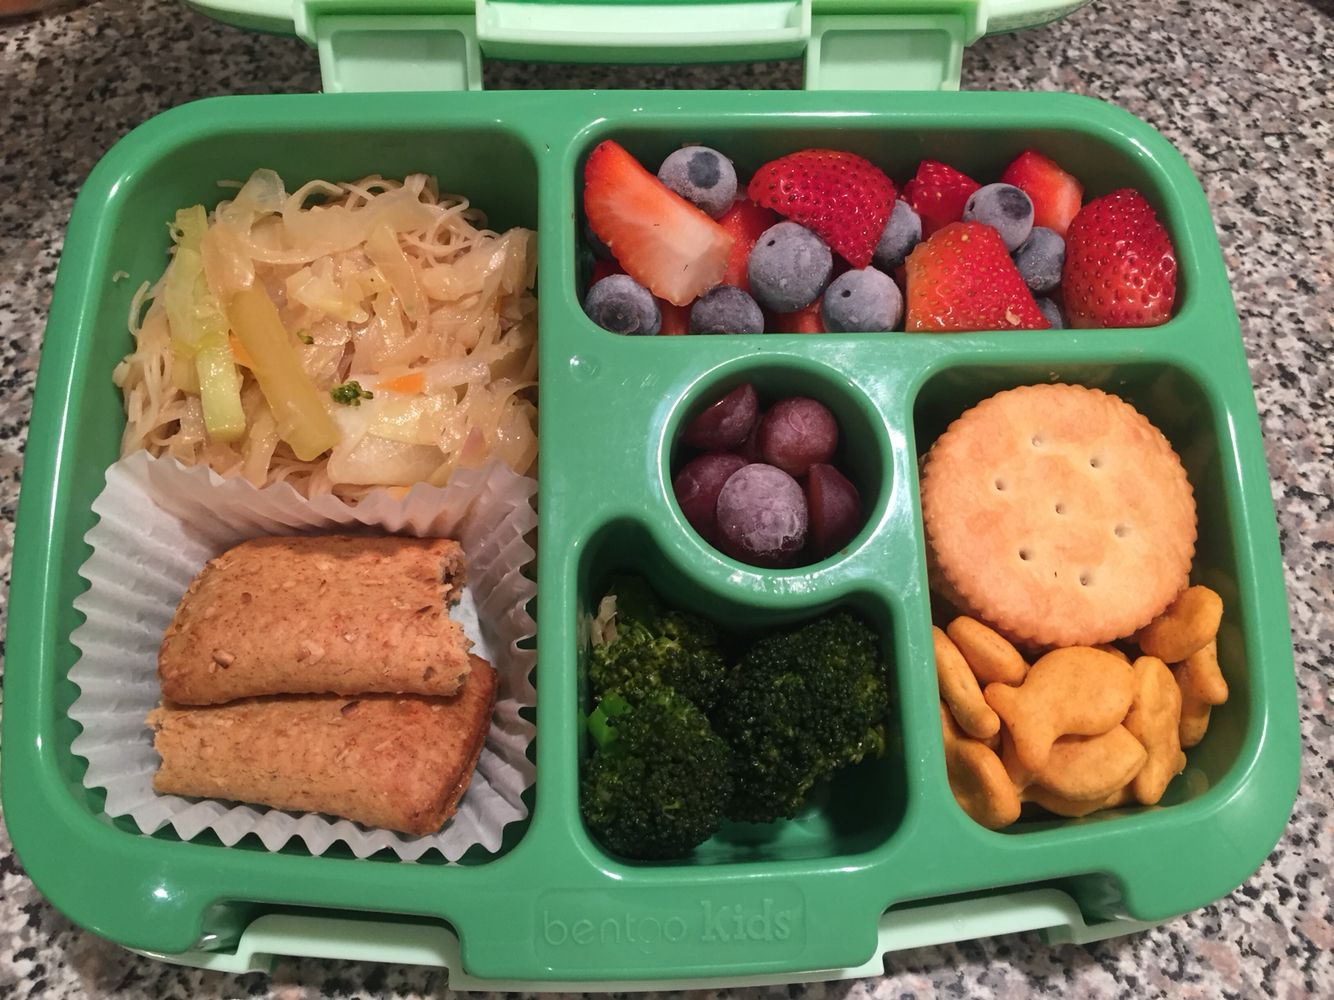 Rice noodles stir fry, Nutrigrain  bar, broccoli, crackers, goldfish, frozen grapes, strawberries and blueberries.